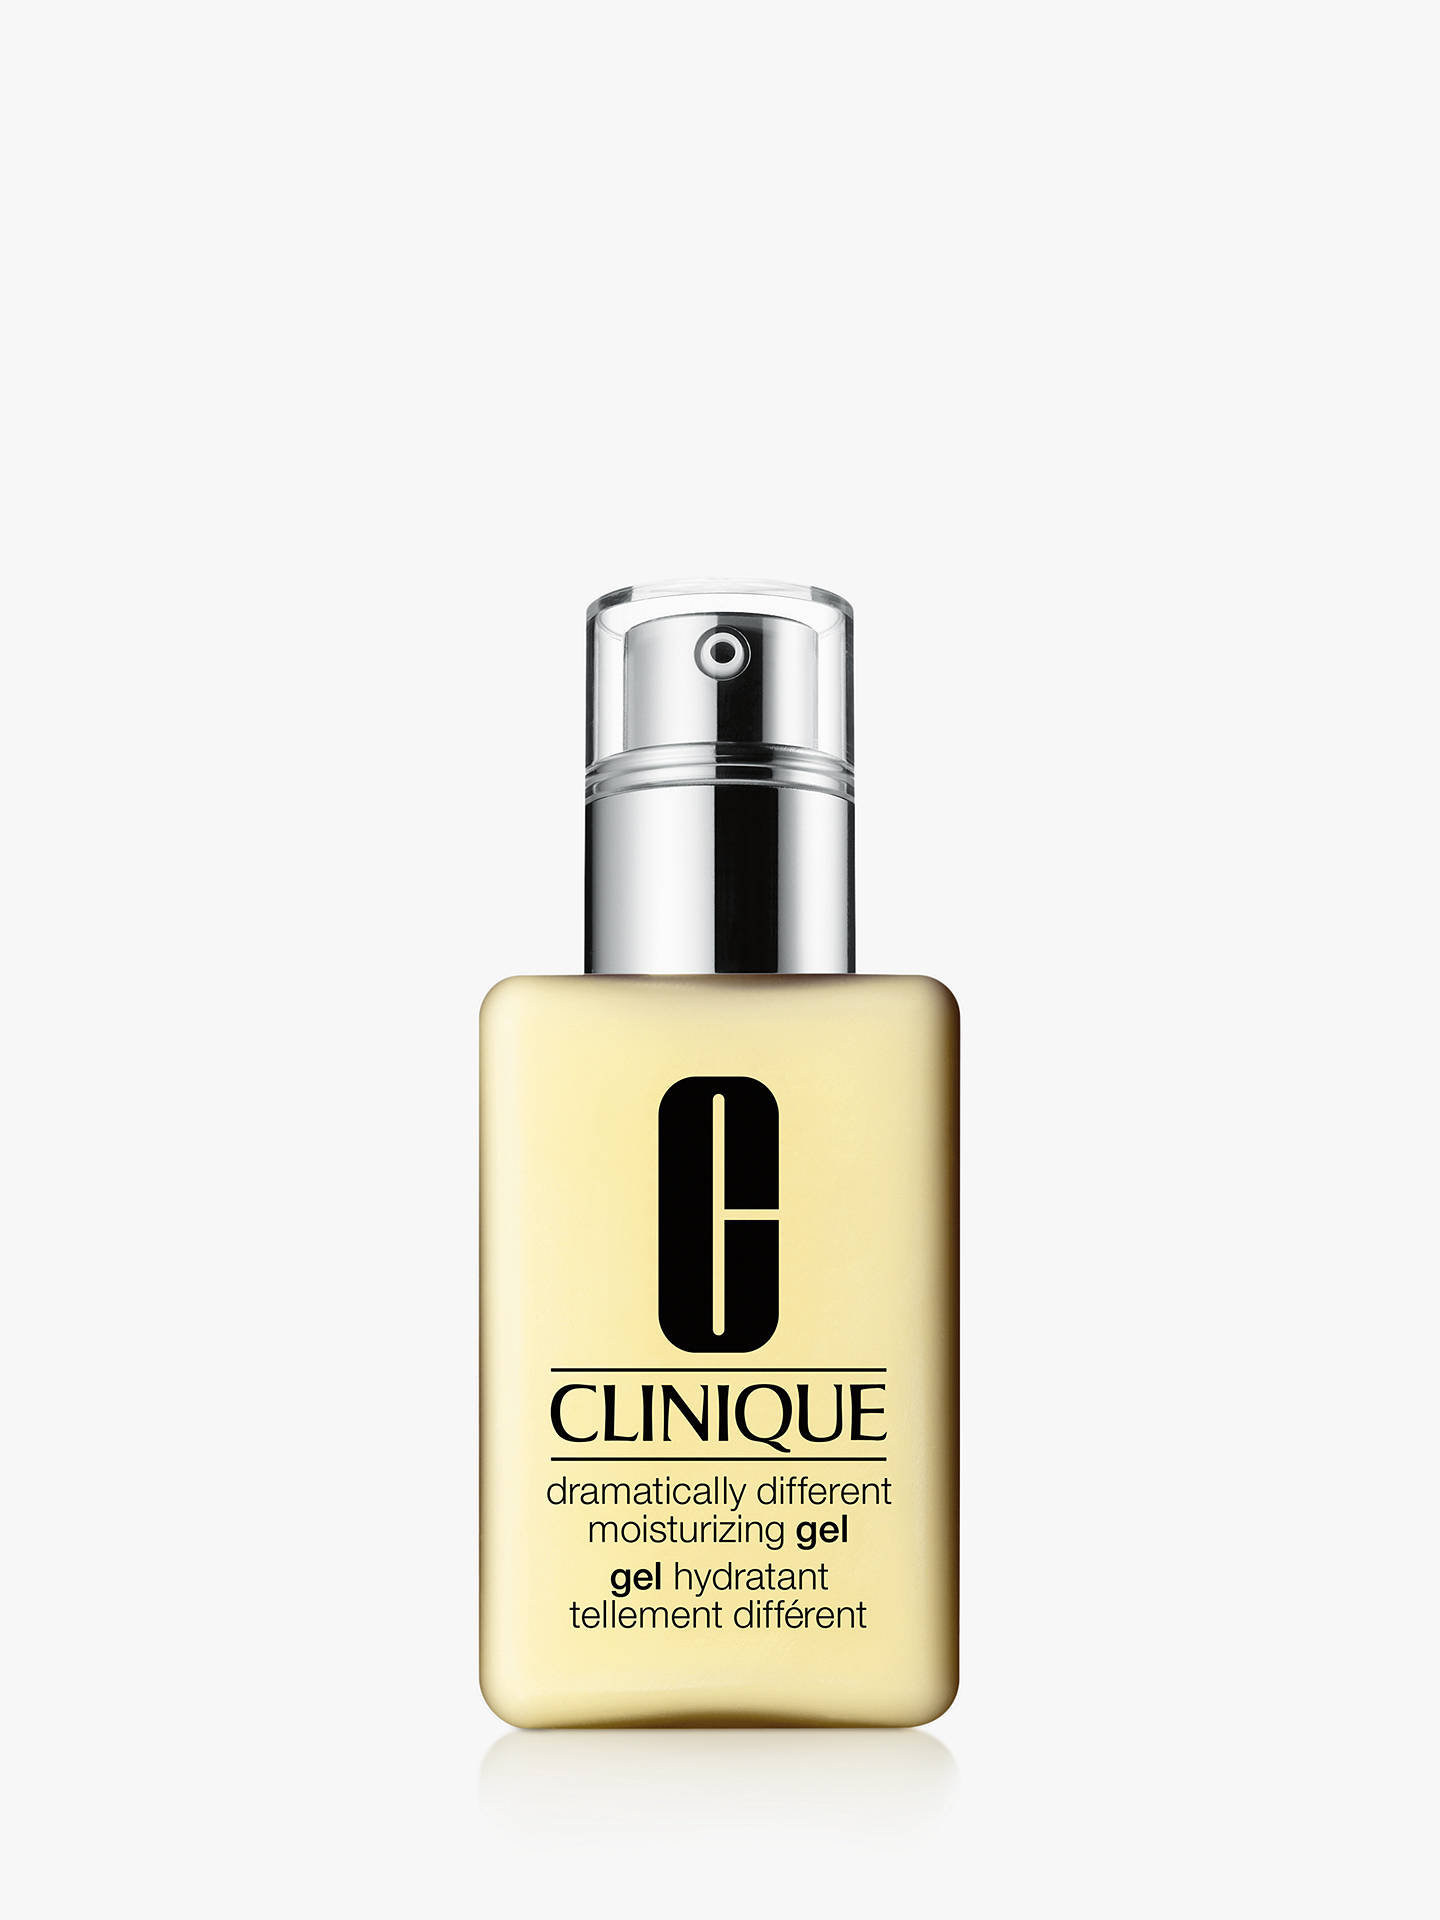 Buy Clinique Dramatically Different Moisturising Gel With Pump - Combination to Oily Skin Types, 125ml Online at johnlewis.com